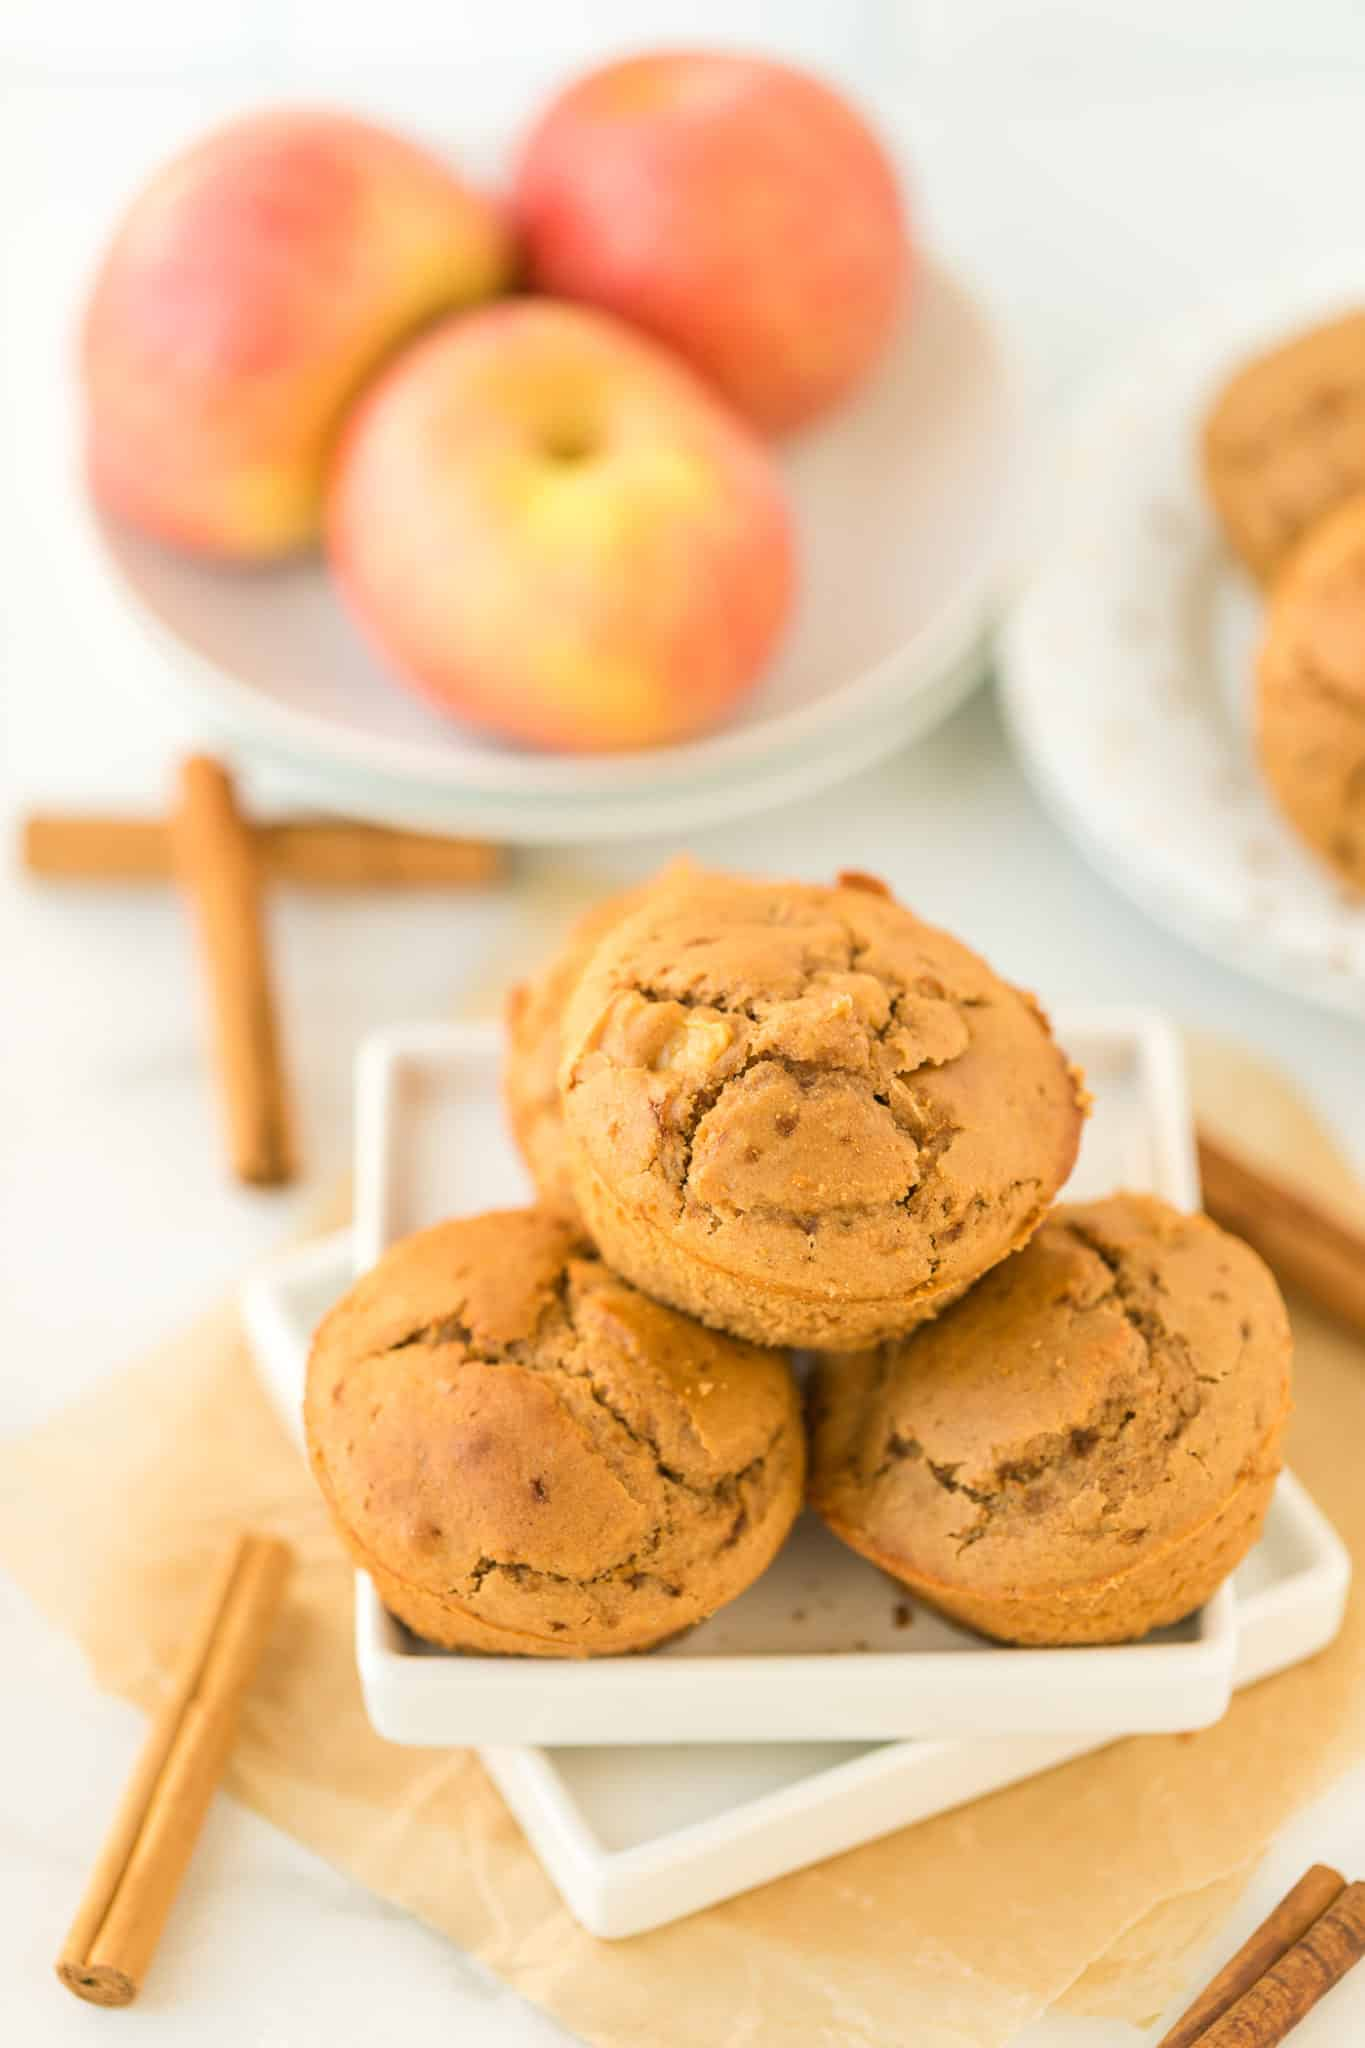 baked apple cider muffins on a plate ready to be served